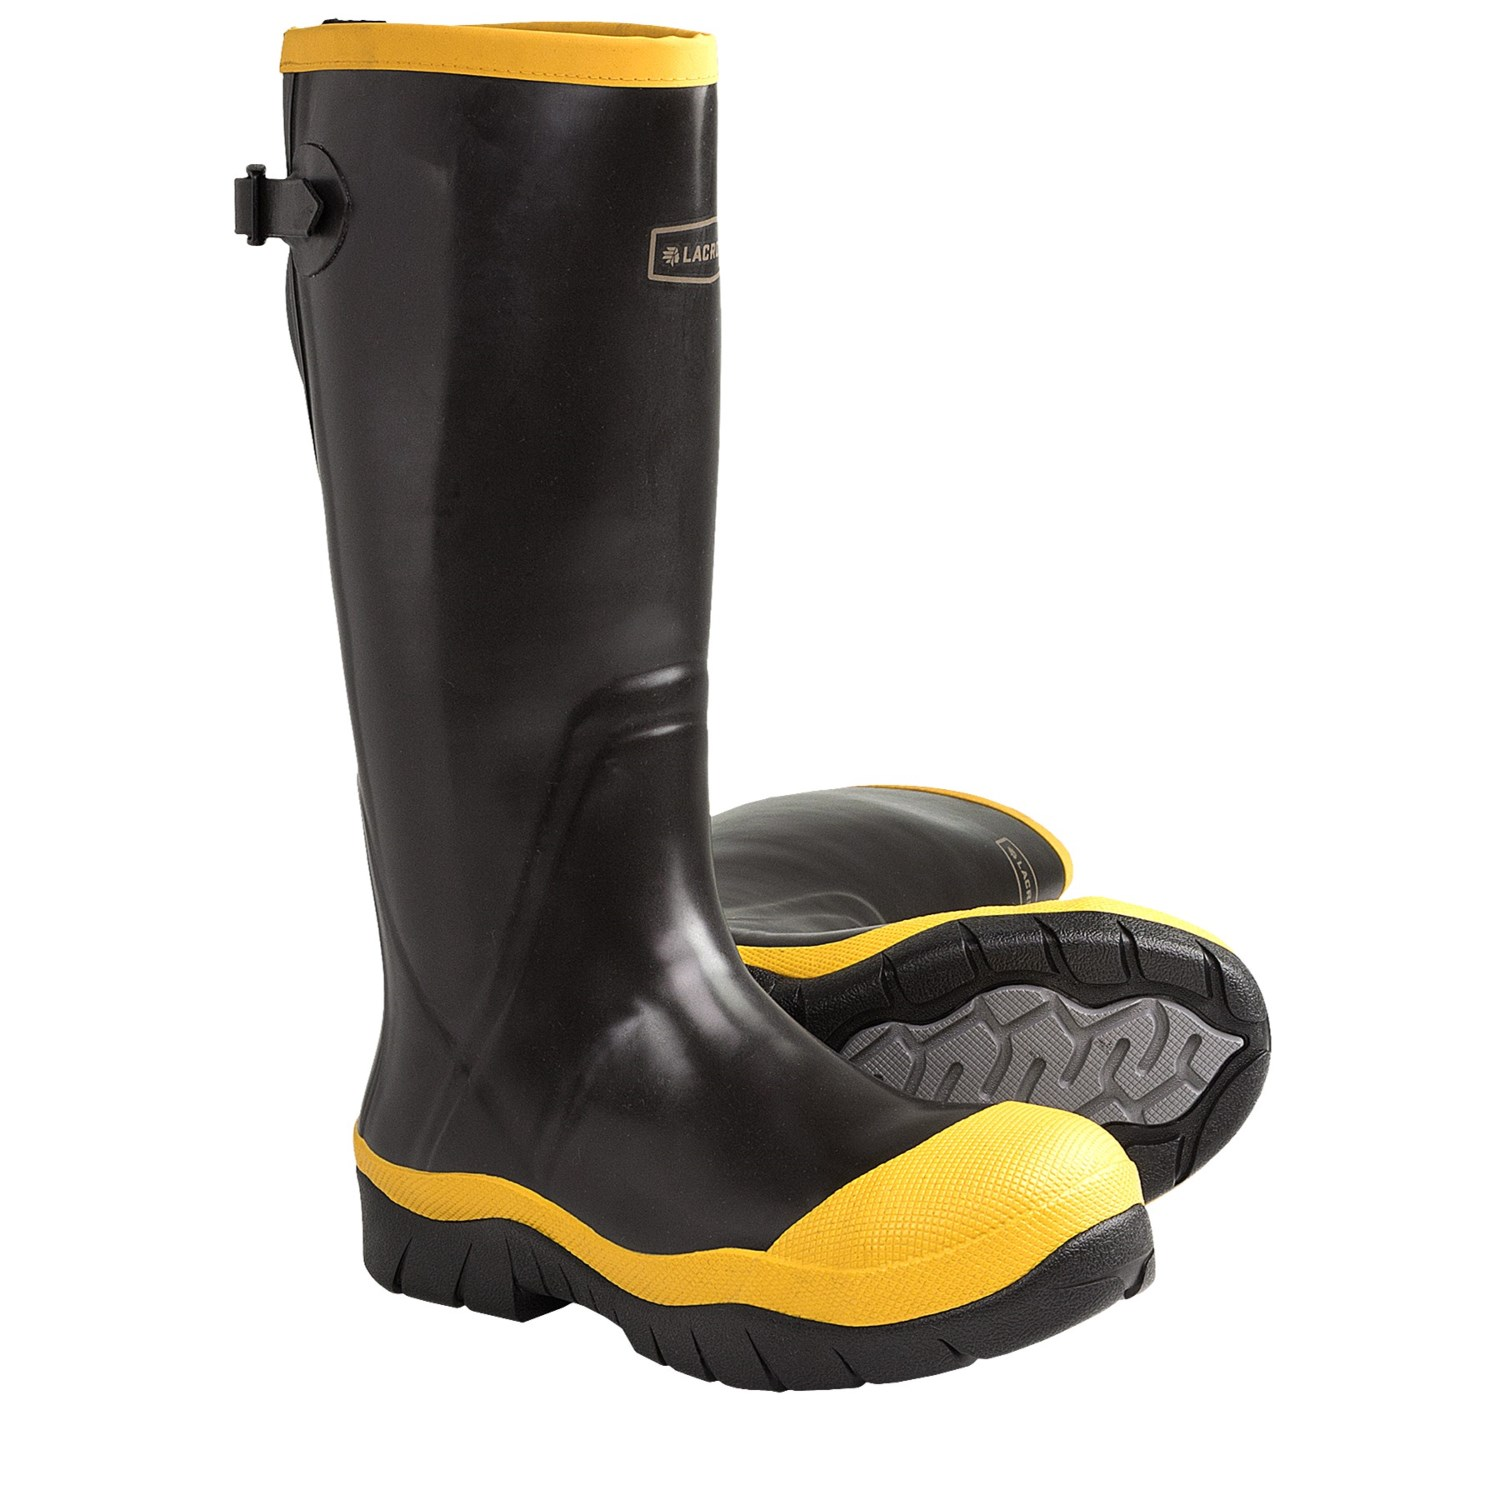 Pin Lacrosse Rubber Boots On Sale Hunting Gear Forum on ...